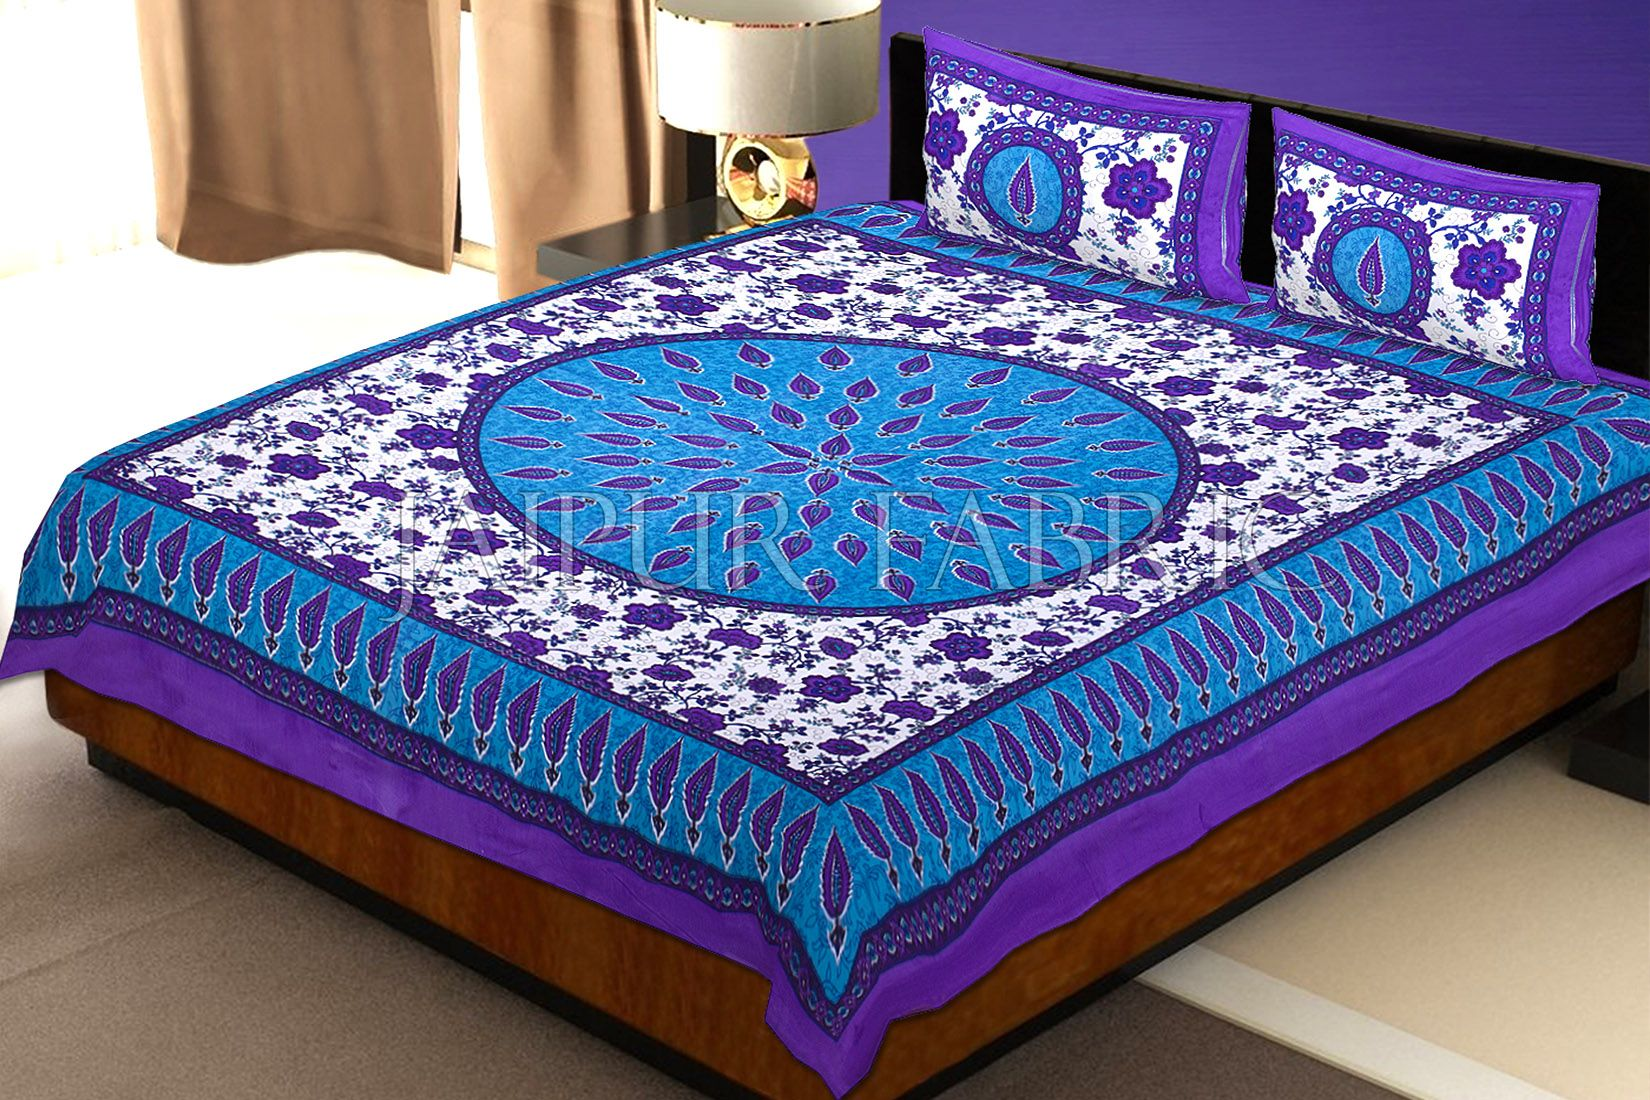 Purple and Blue Border with White Base Floral Print Cotton Double Bed Sheet